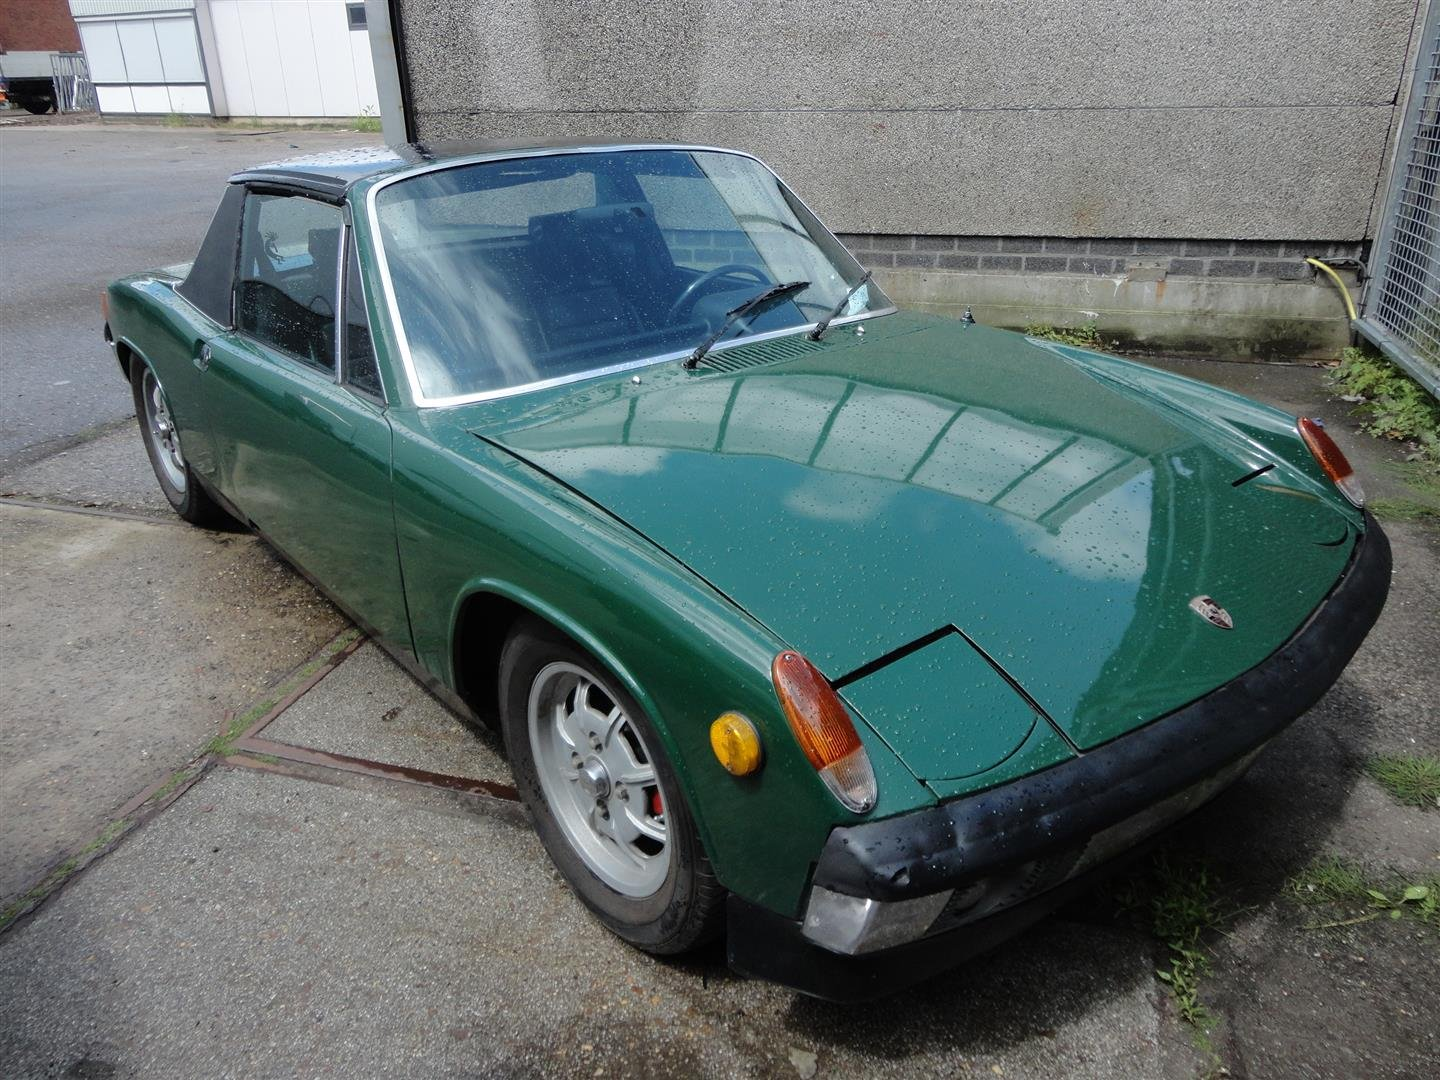 1970 Porsche 914 '70 green For Sale (picture 1 of 6)